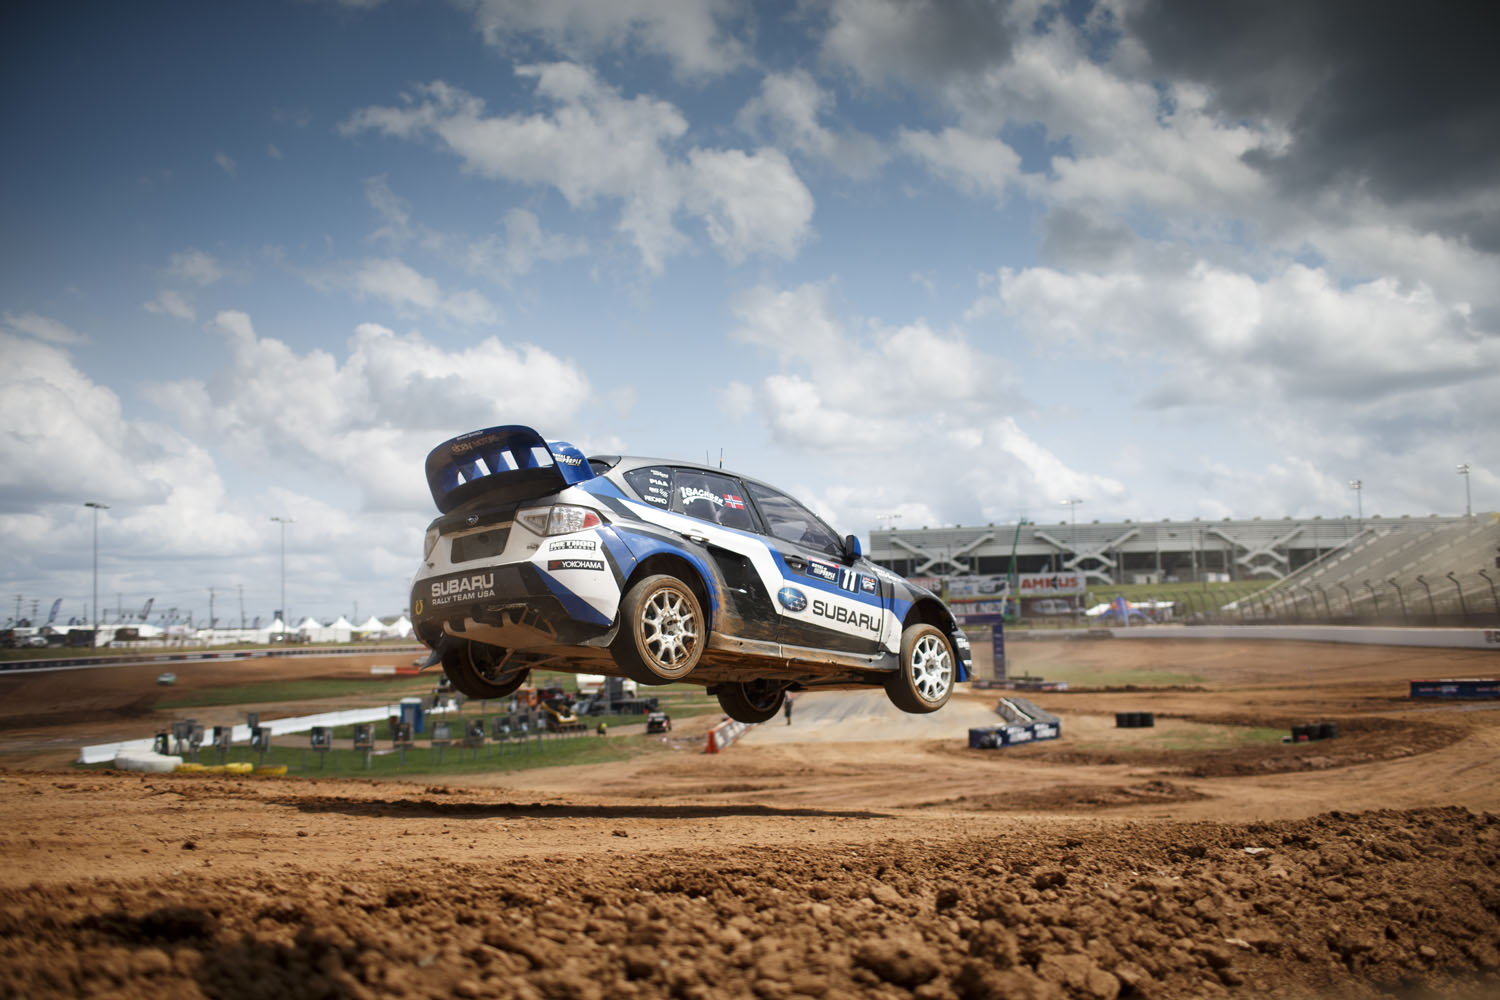 Sverre Isachsen catching some air at round 5 of the Red Bull Global Rallycross series at Charlotte Motor Speedway.